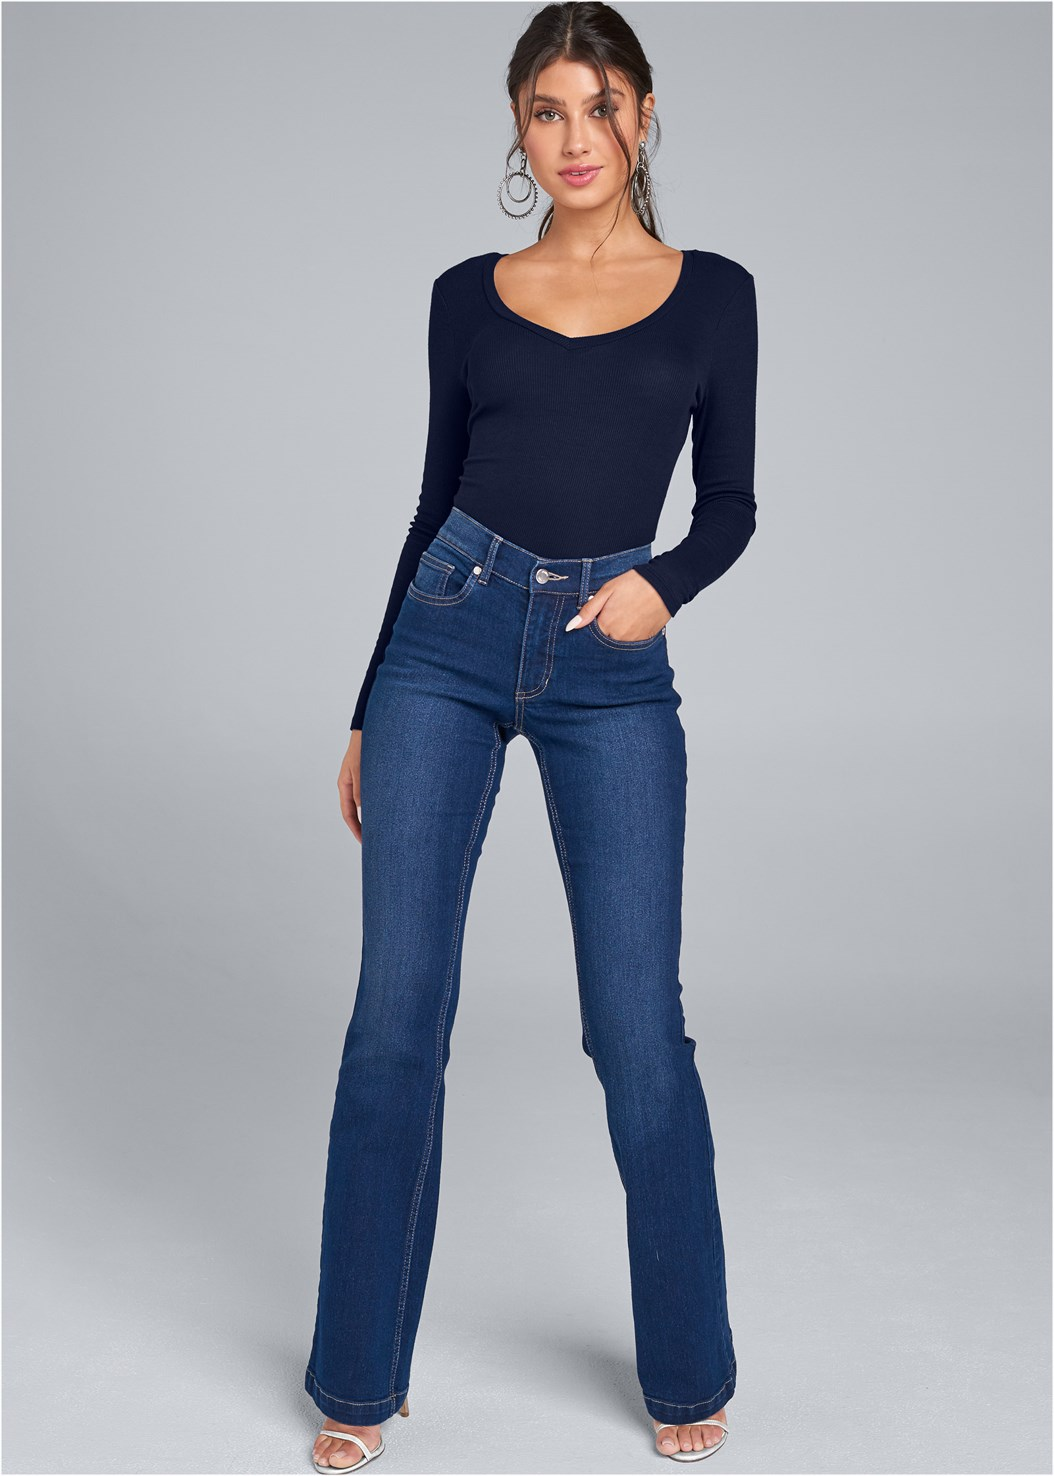 Casual Bootcut Jeans,Ribbed V-Neck Top,Ribbed Long Sleeve Top,Cold Shoulder Casual Top,Faux Suede Pointy Booties,High Heel Strappy Sandals,Peep Toe Booties,Double Buckle Belt,Studded Matte Hoops